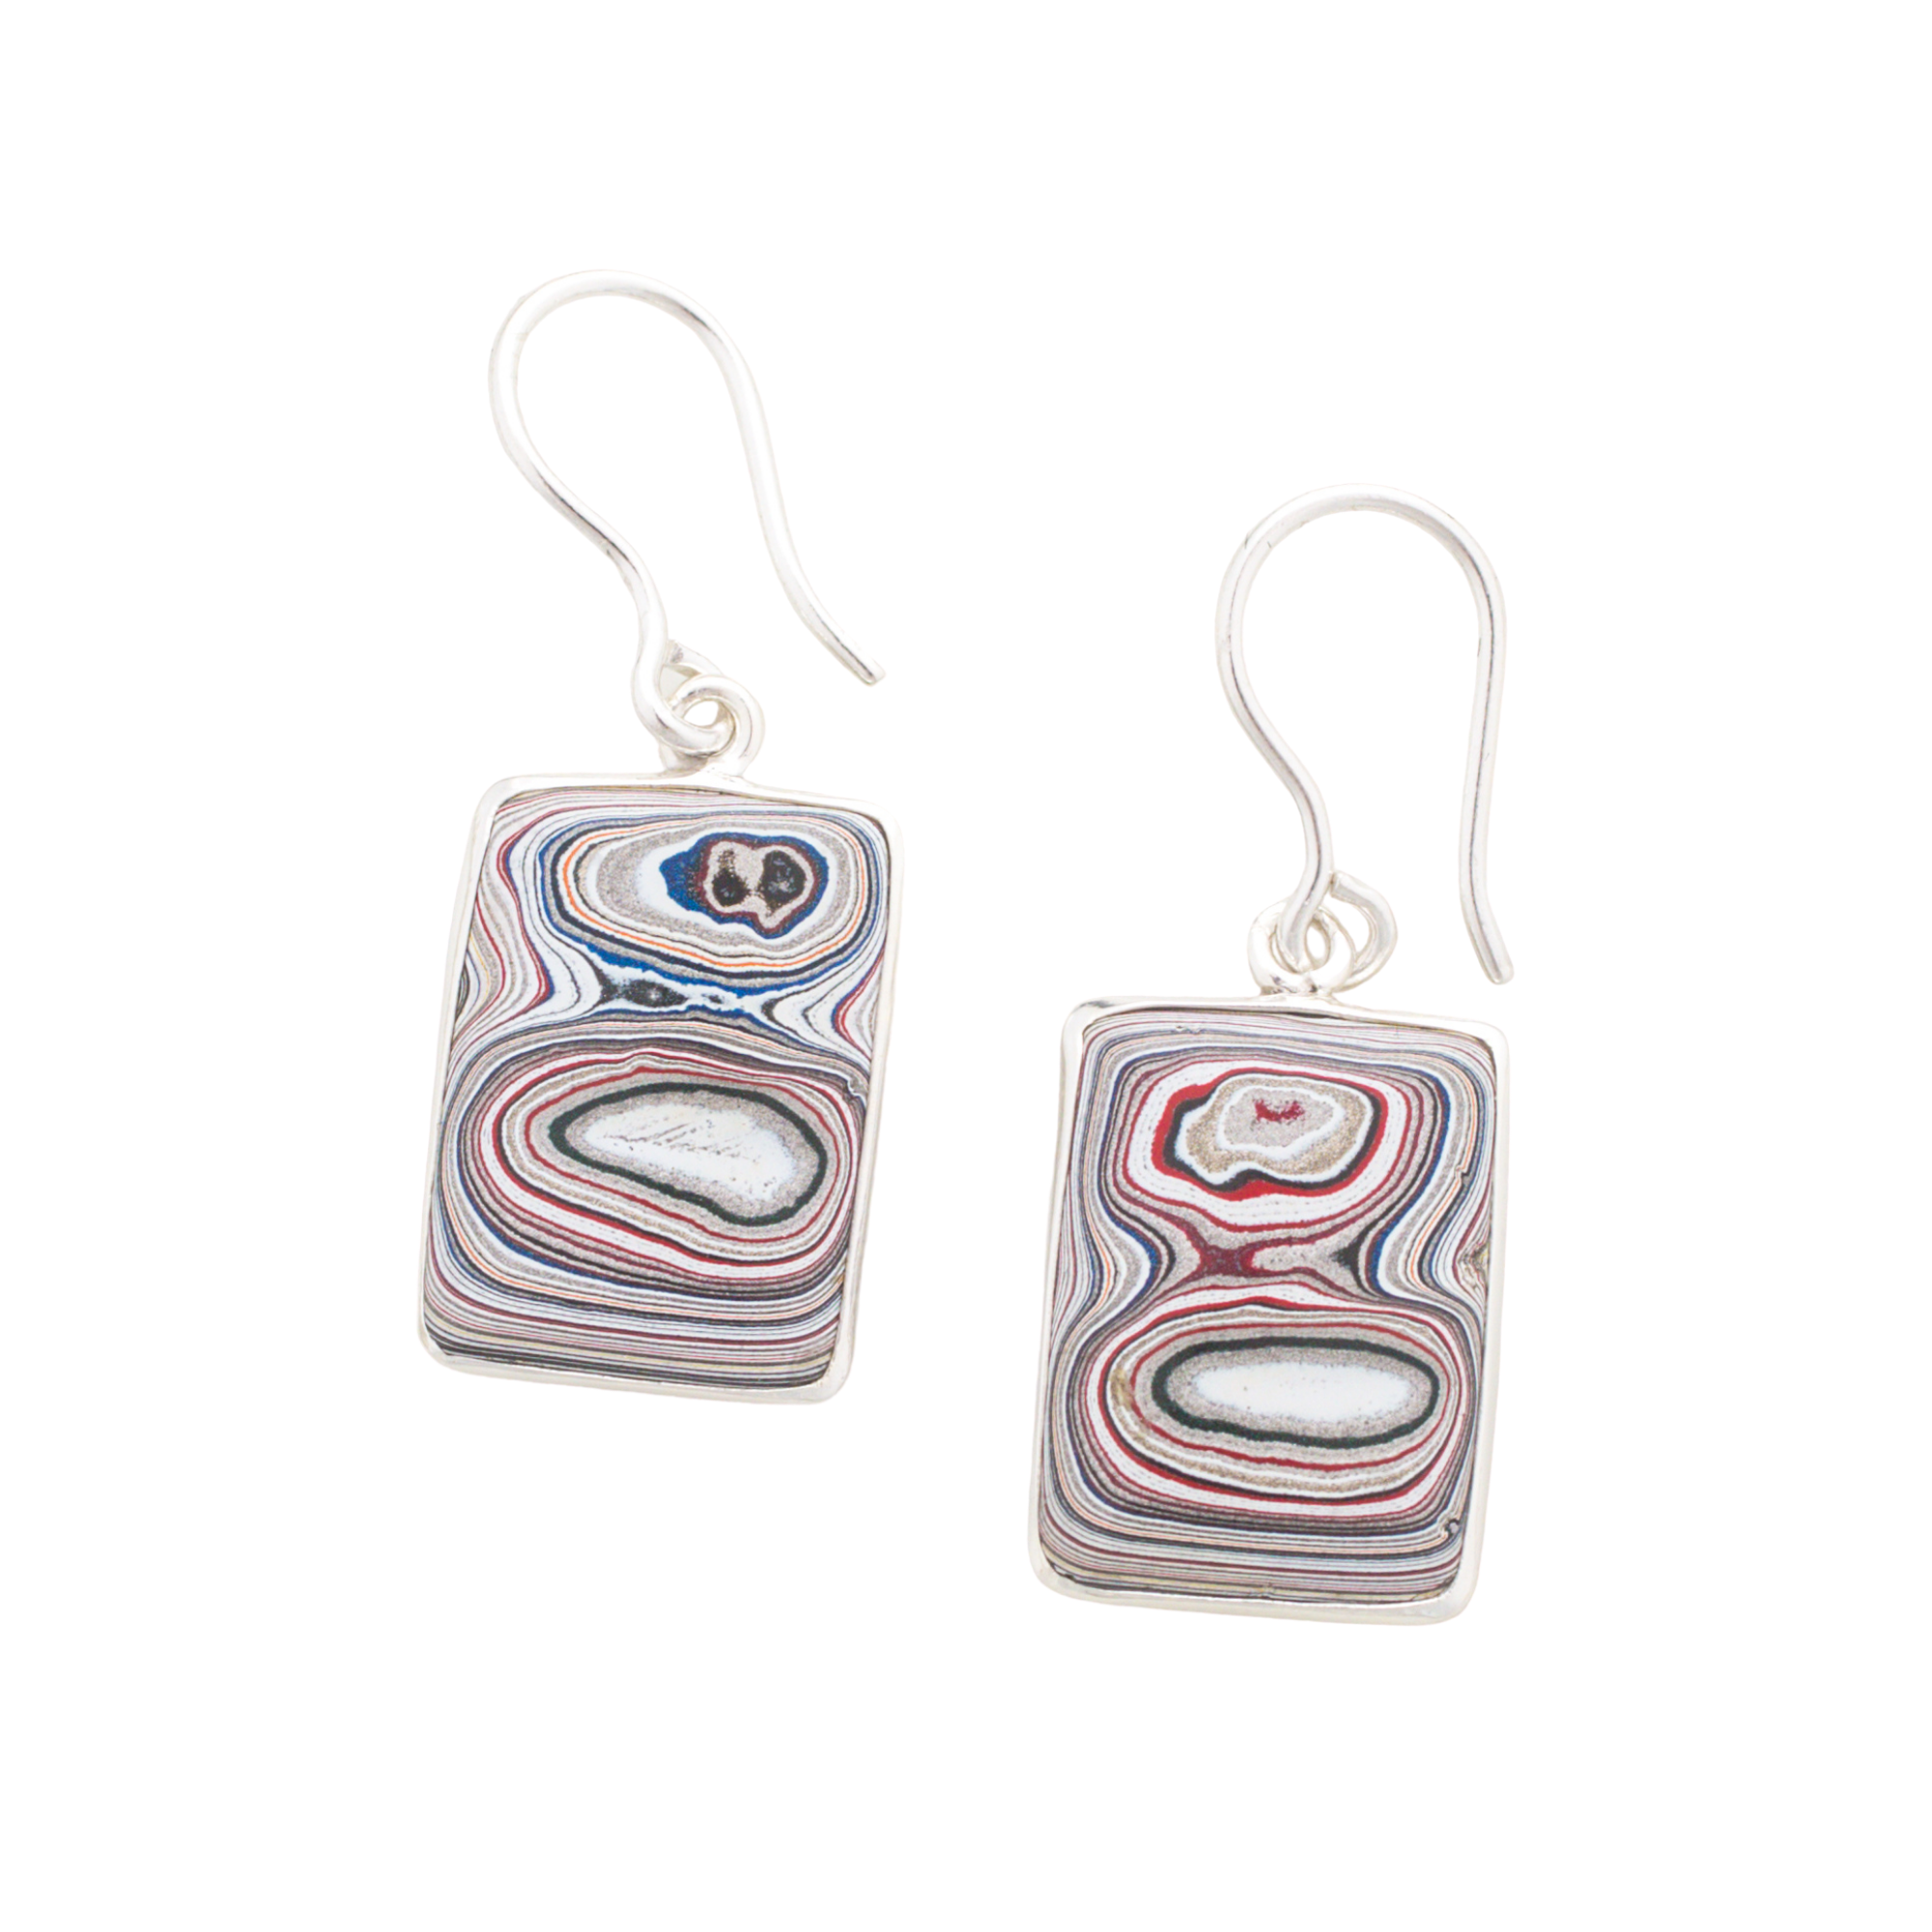 Fordite Hook Earrings in Sterling Silver EFMH0006